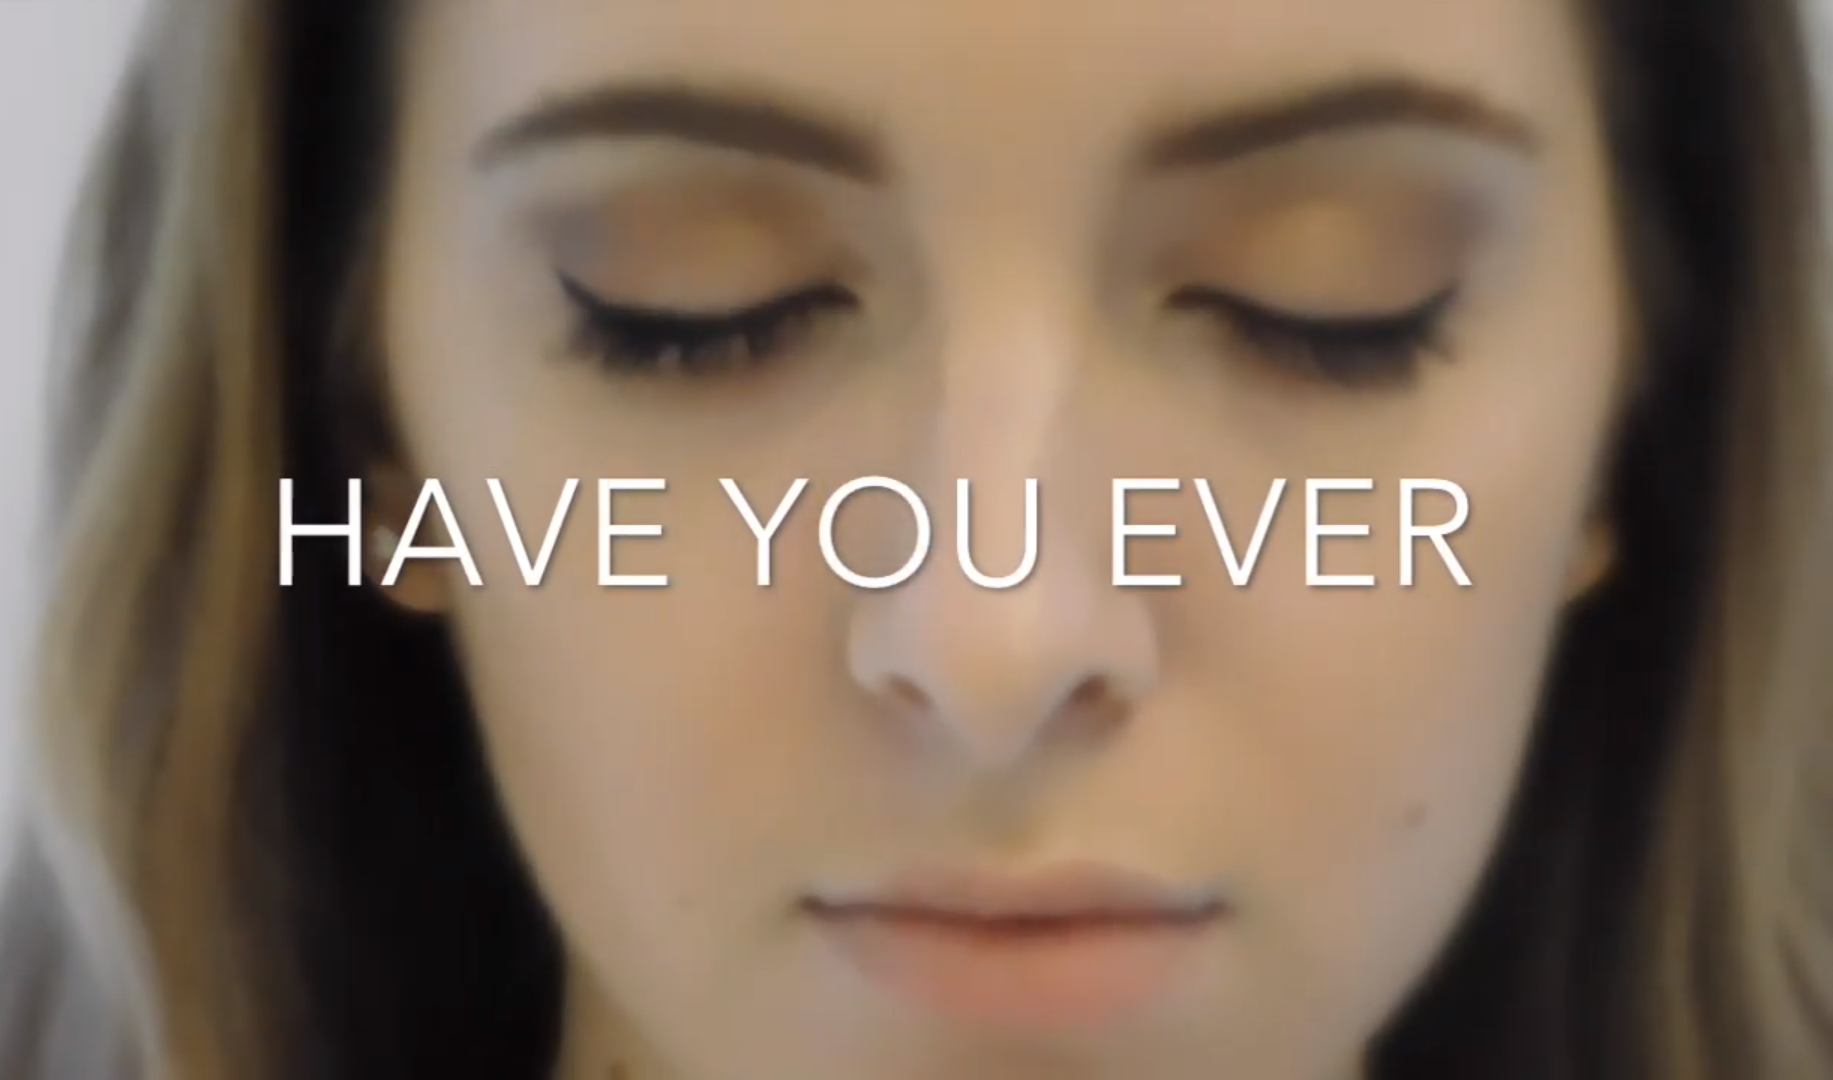 """Nishit Daswani screenshot from youtube video project: close-up on a woman with her eyes closed with a text overlay """"Have you ever"""""""